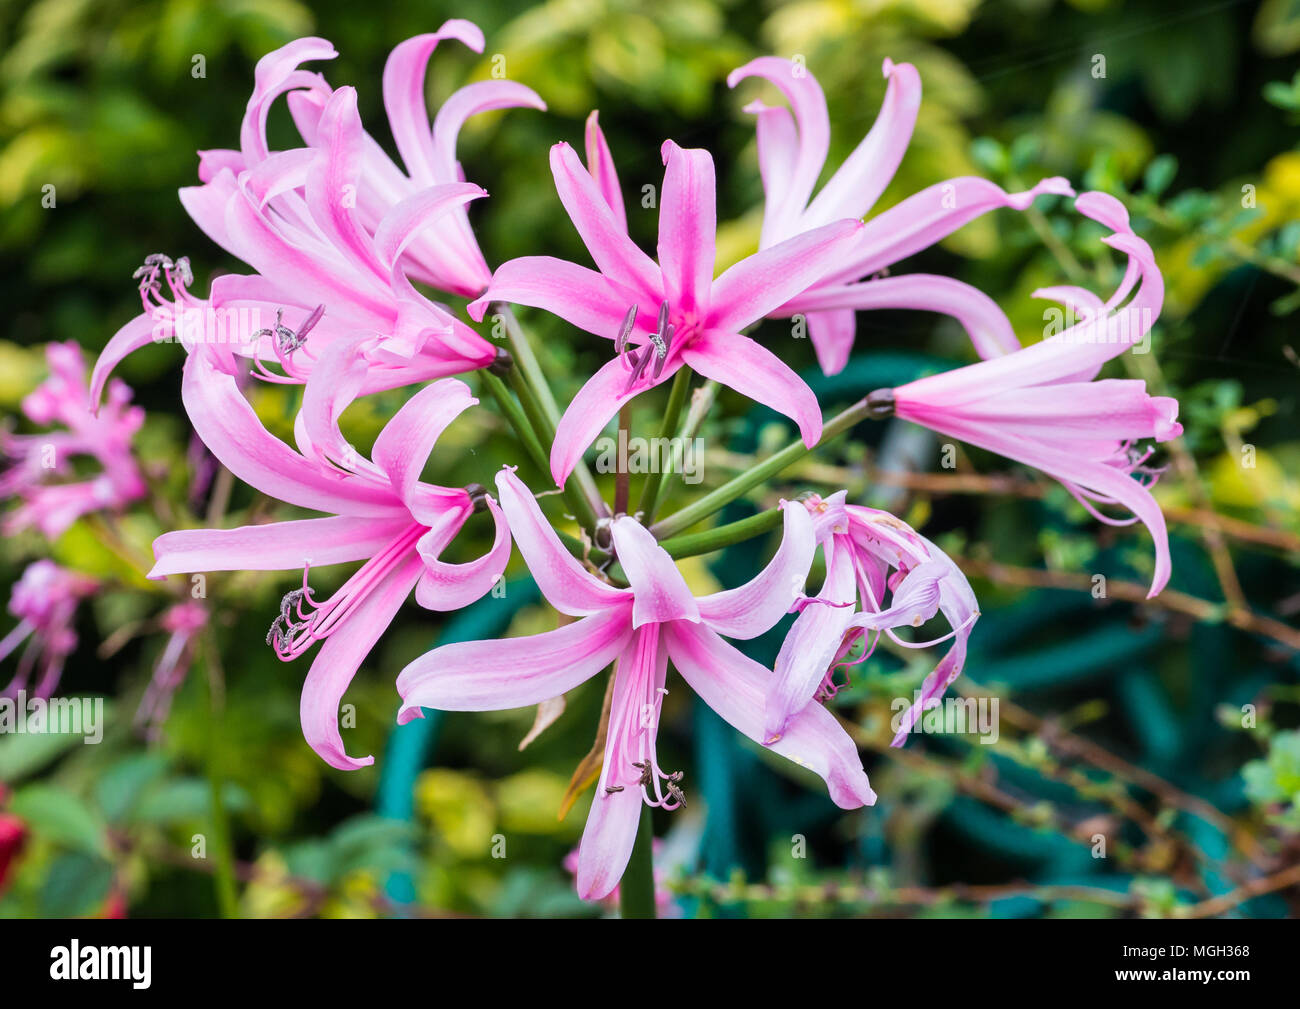 A macro shot of the pink blooms of a nerine bowdenii plant. - Stock Image